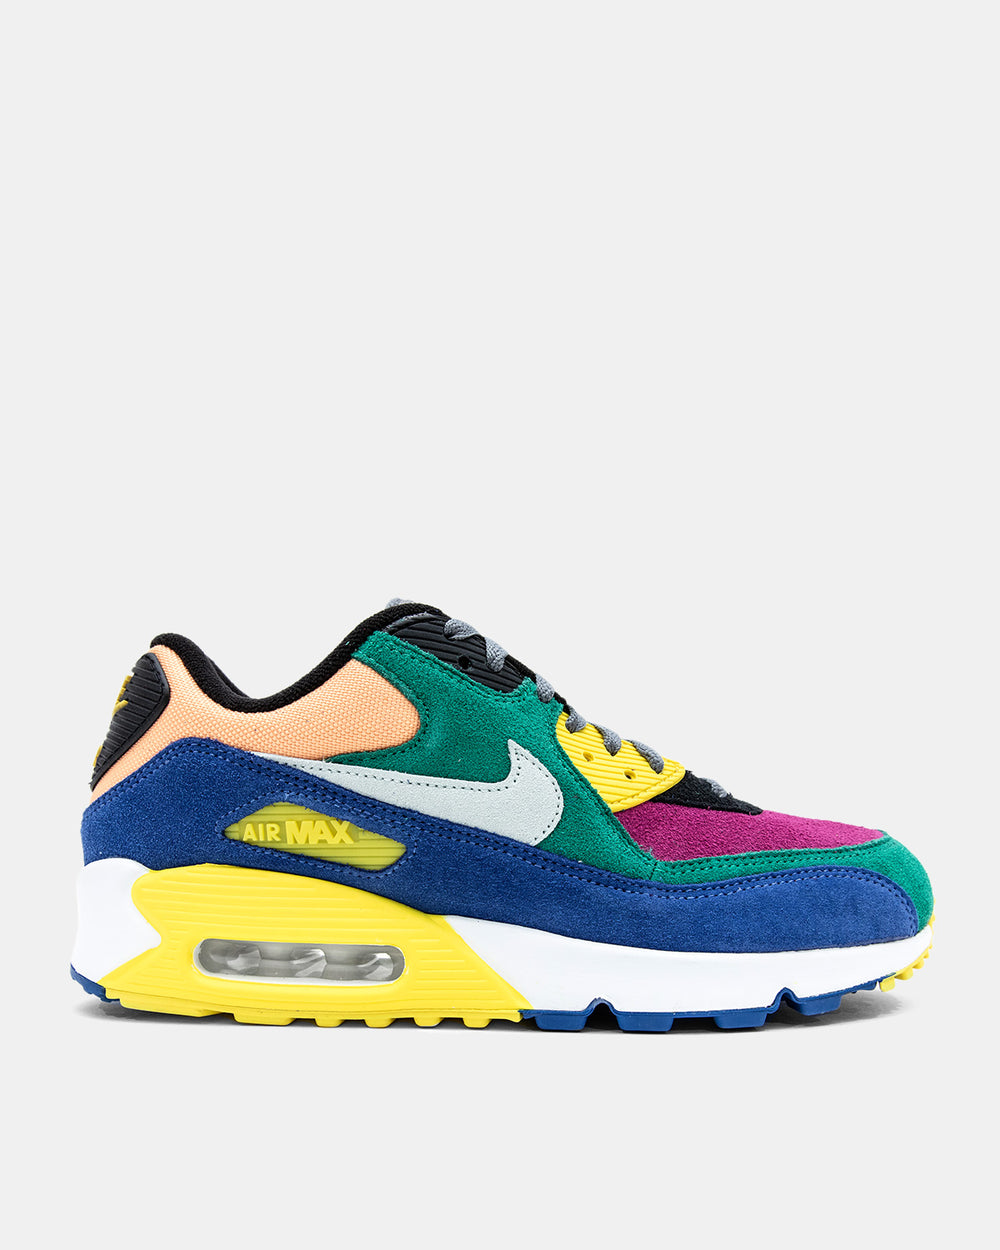 Nike - Air Max 90 'Viotech' (Lucid Green | Game Royal | Opti Yellow | Barley Green)